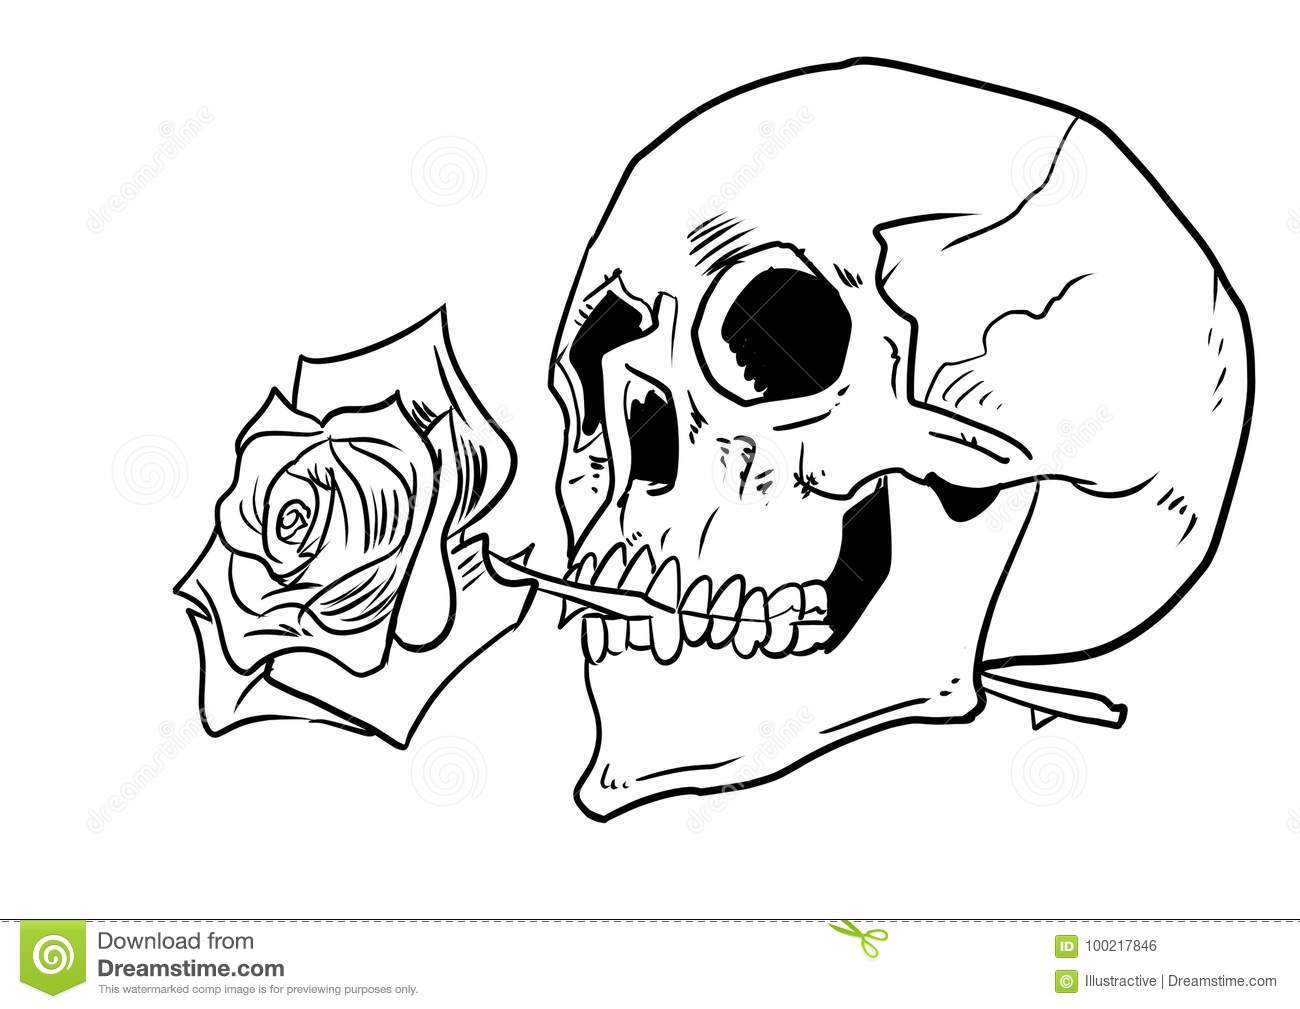 f38e0a35d6798 Human skull with a rose in mouth illustration, ink illustration for tattoo